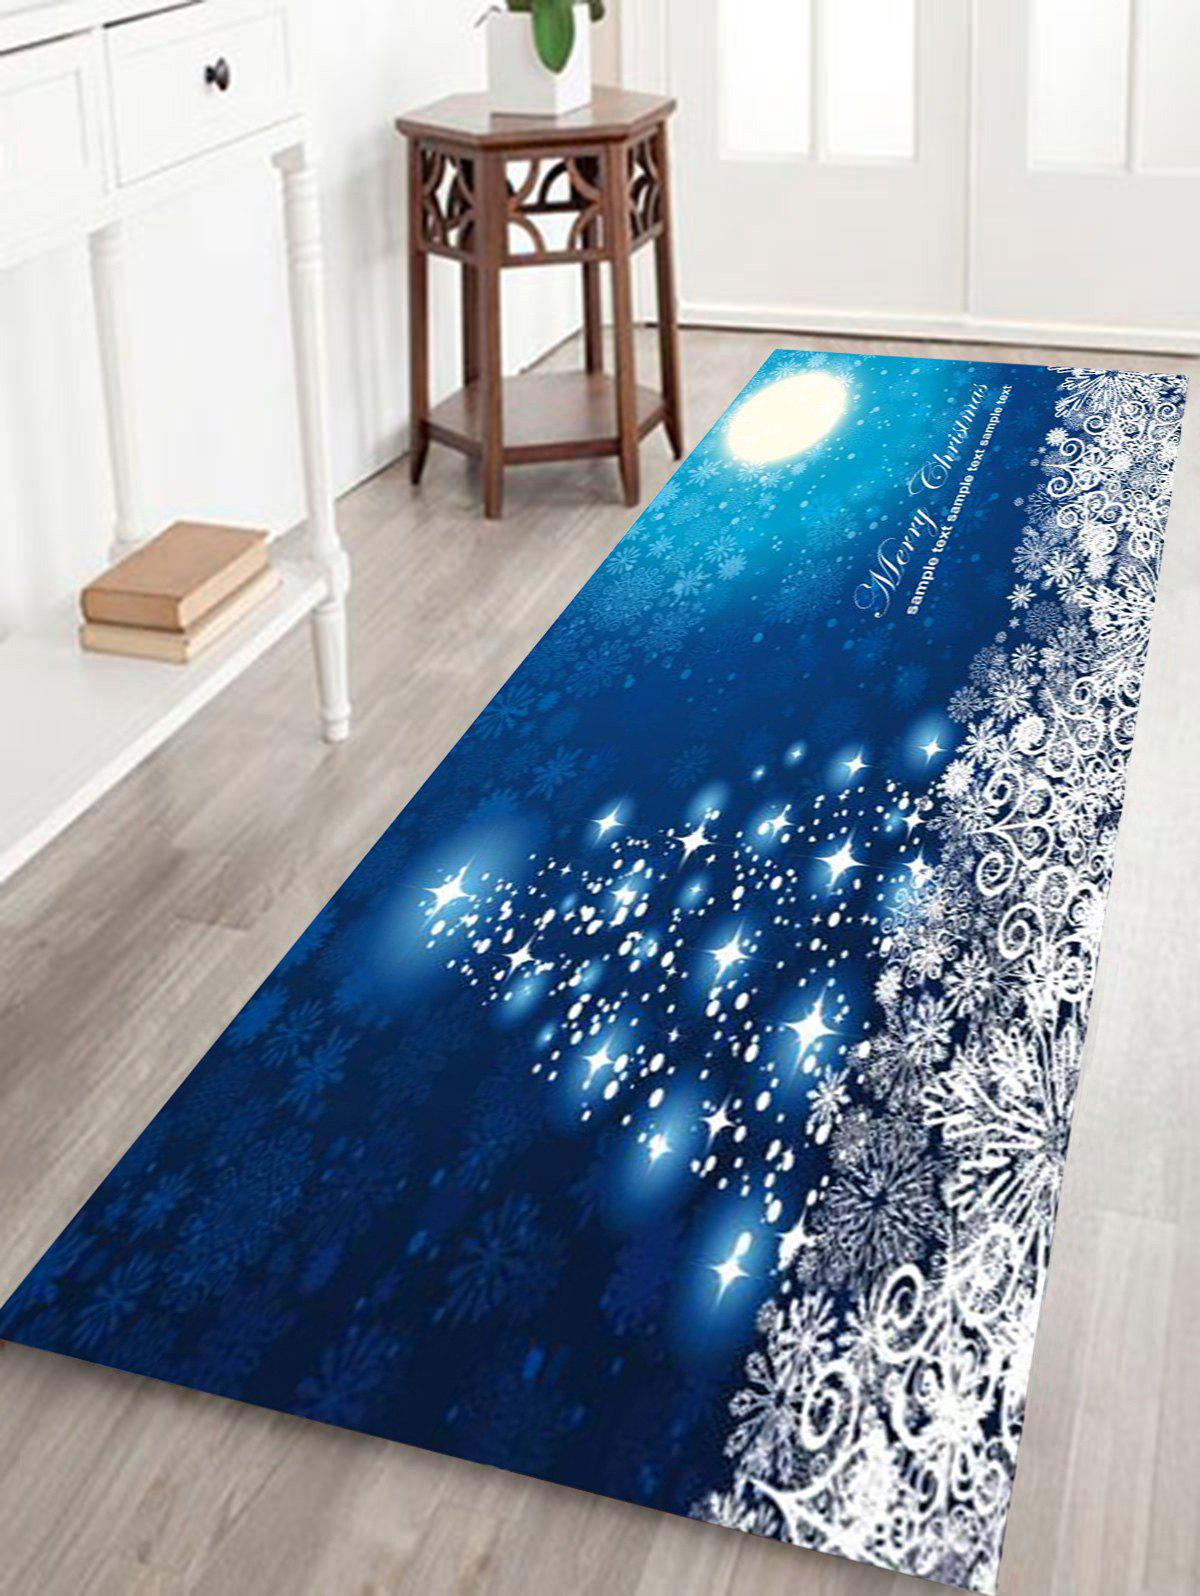 Sparkling Christmas Tree Snowflake Print Coral Fleece Nonslip Bath RugHOME<br><br>Size: W24 INCH * L71 INCH; Color: BLUE; Products Type: Bath rugs; Materials: Coral FLeece; Pattern: Christmas Tree,Letter,Snowflake; Style: Festival; Shape: Rectangular; Package Contents: 1 x Rug;